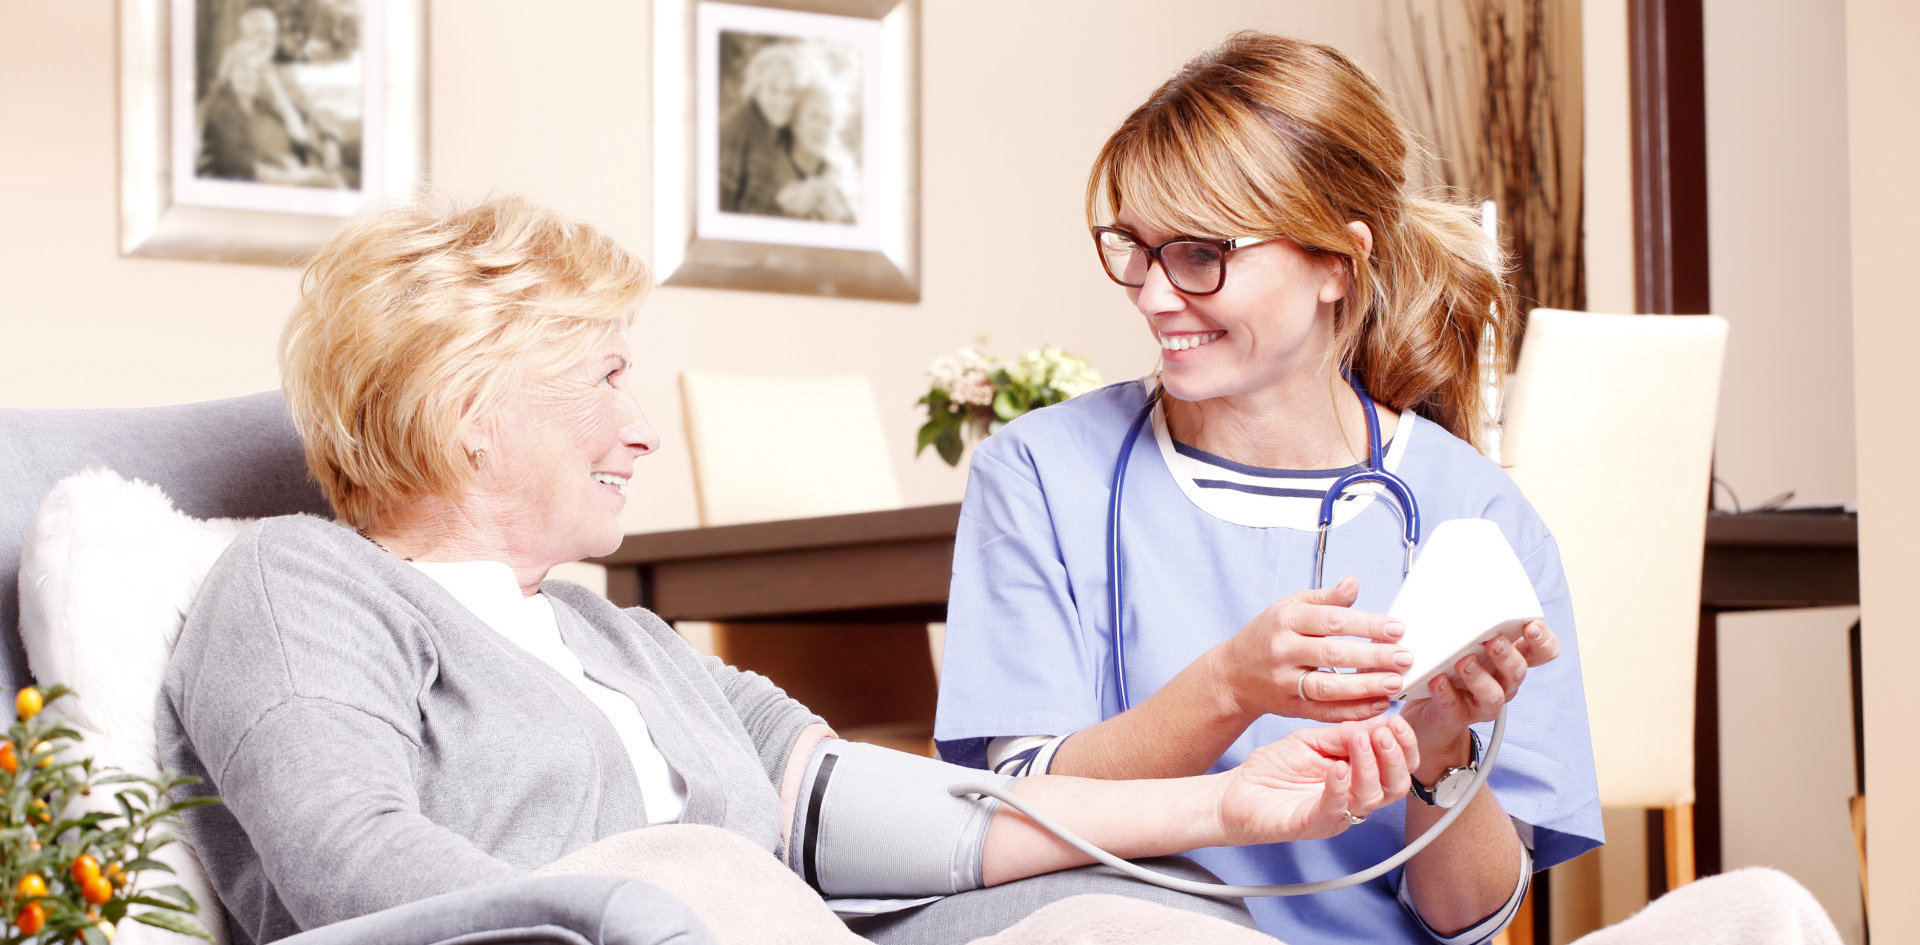 a nurse checking the blood pressure of a senior woman